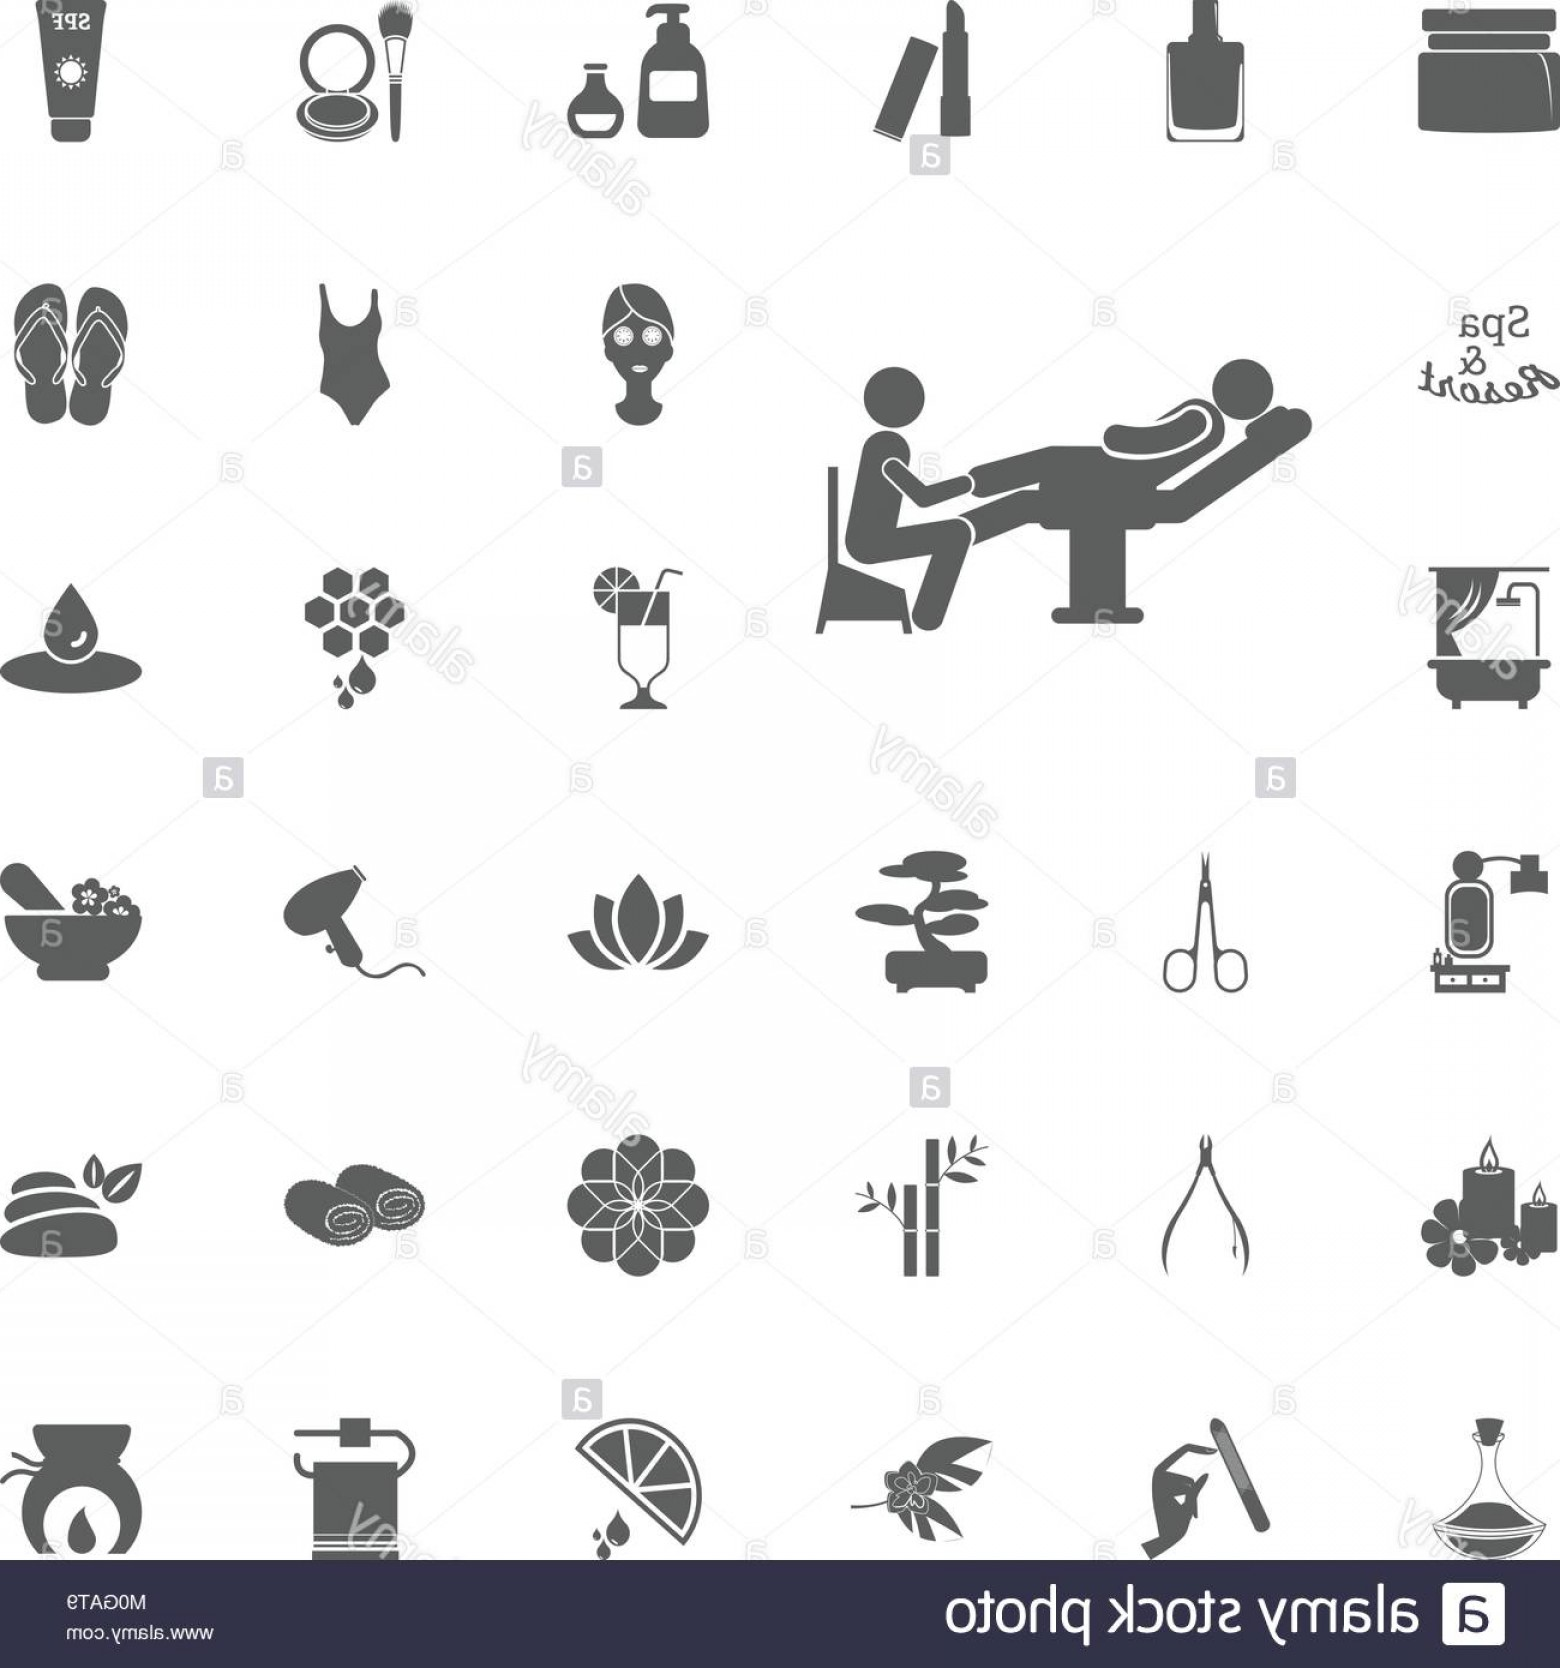 33 Rifle Vector: Stock Photo Pedicure Icon Spa And Recreation Vector Set Icons Set Of Spa Icons